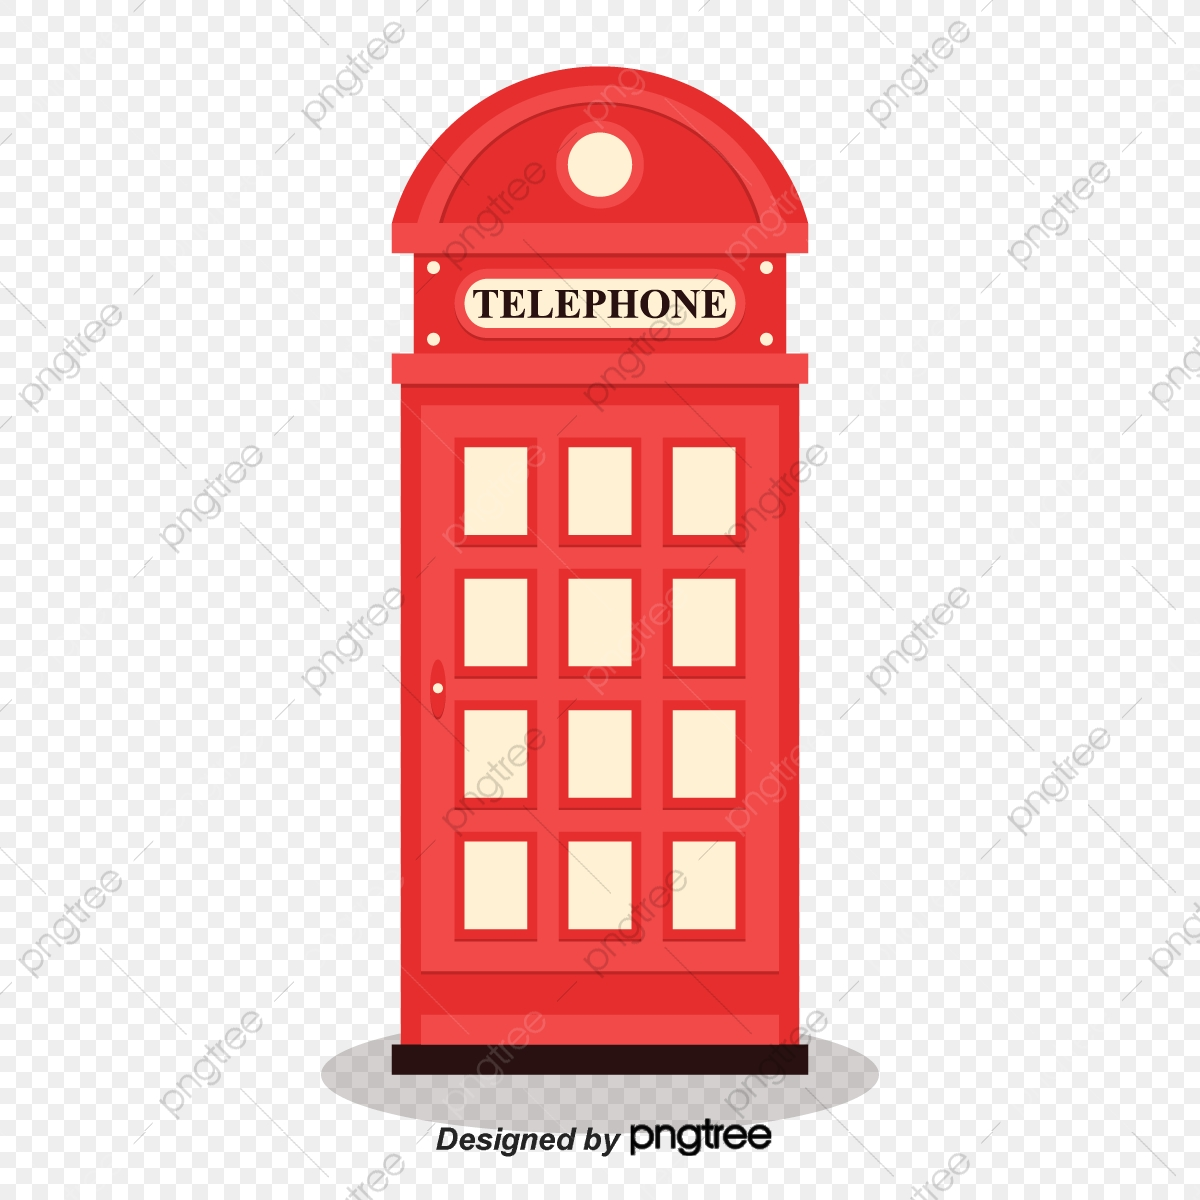 png library library Simple red phone elements. Booth clipart icon british.